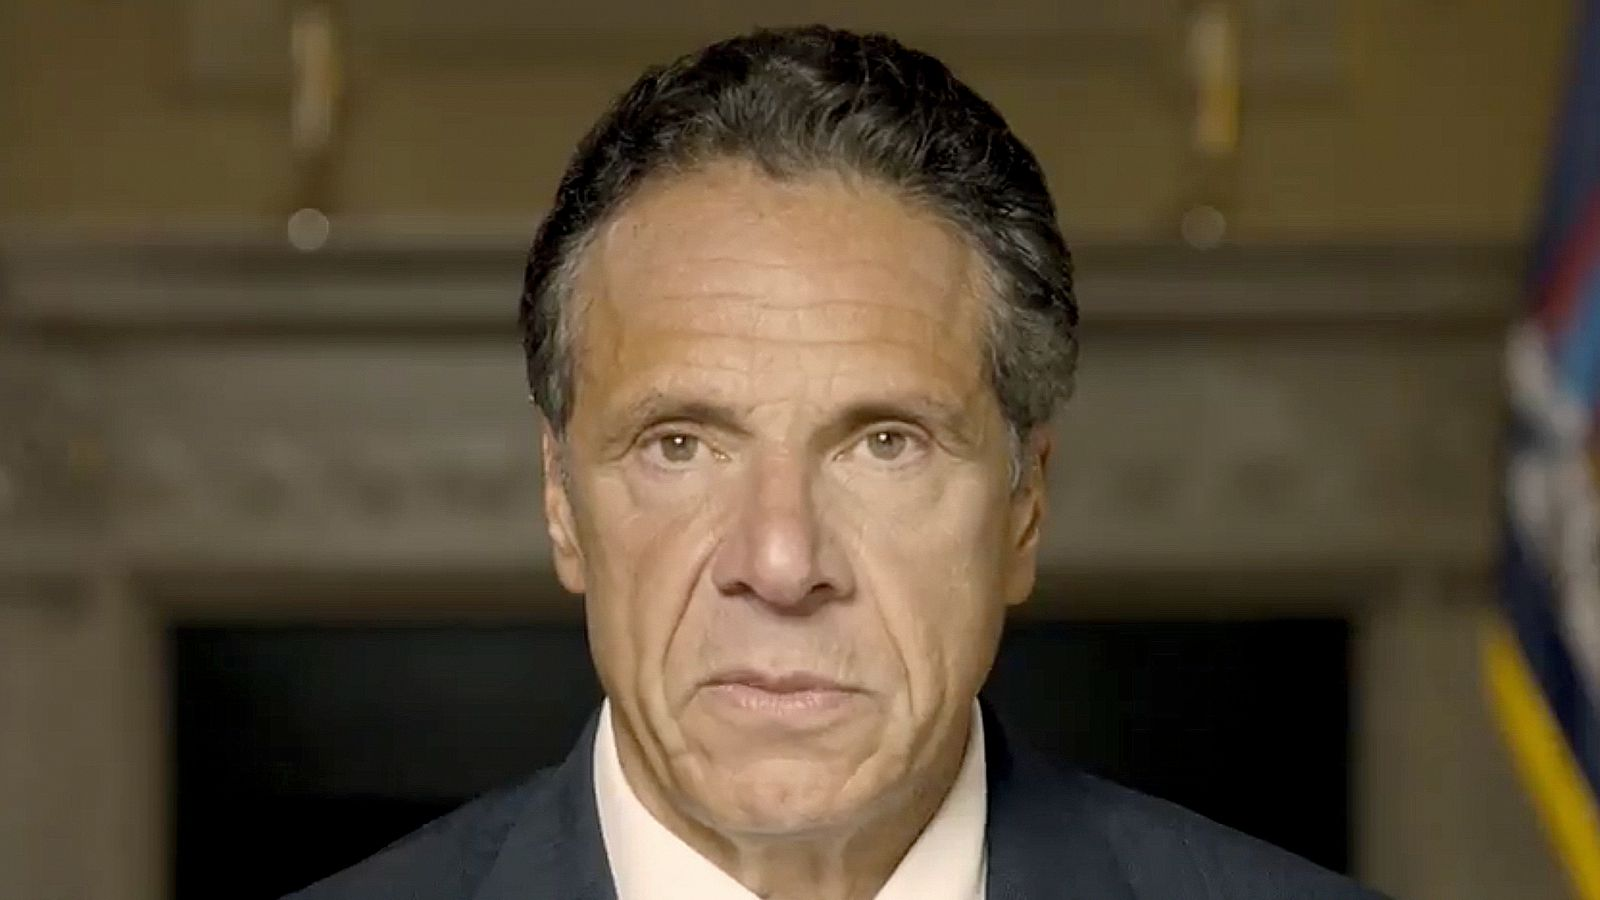 Andrew Cuomo: New York governor facing calls to resign after investigation finds he sexually harassed women